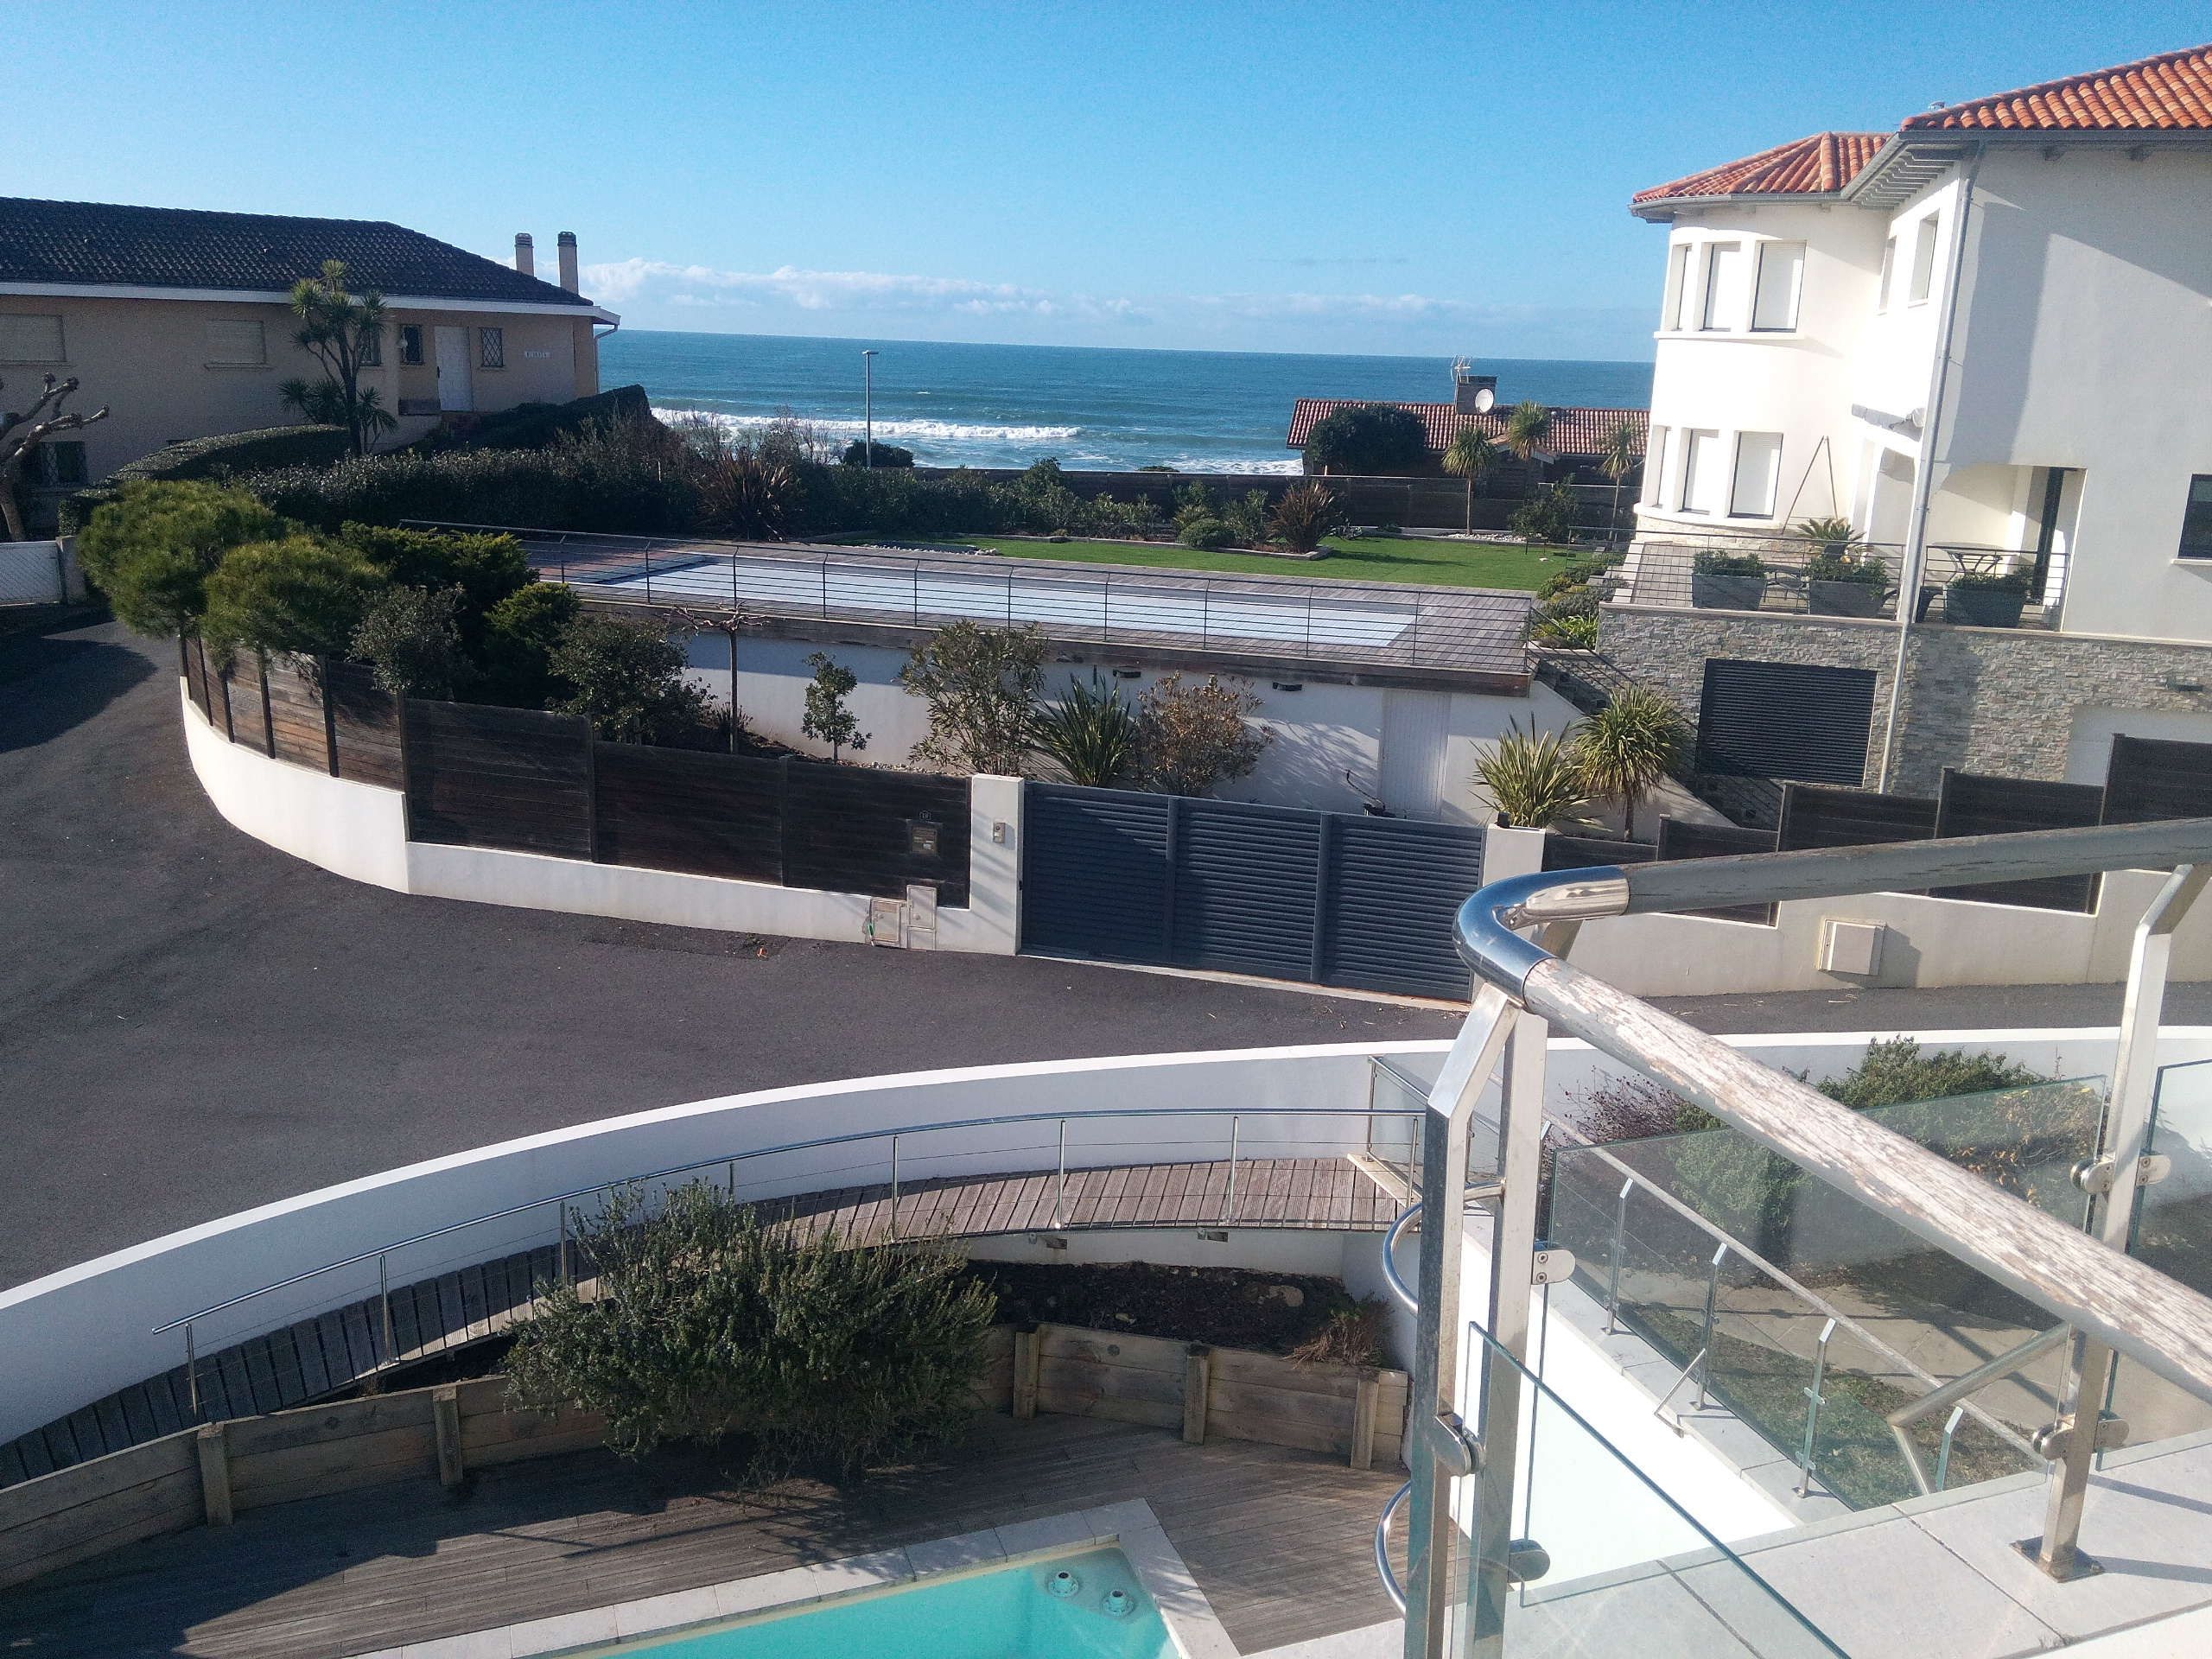 Detached house for sale in Biarritz with views to the sea